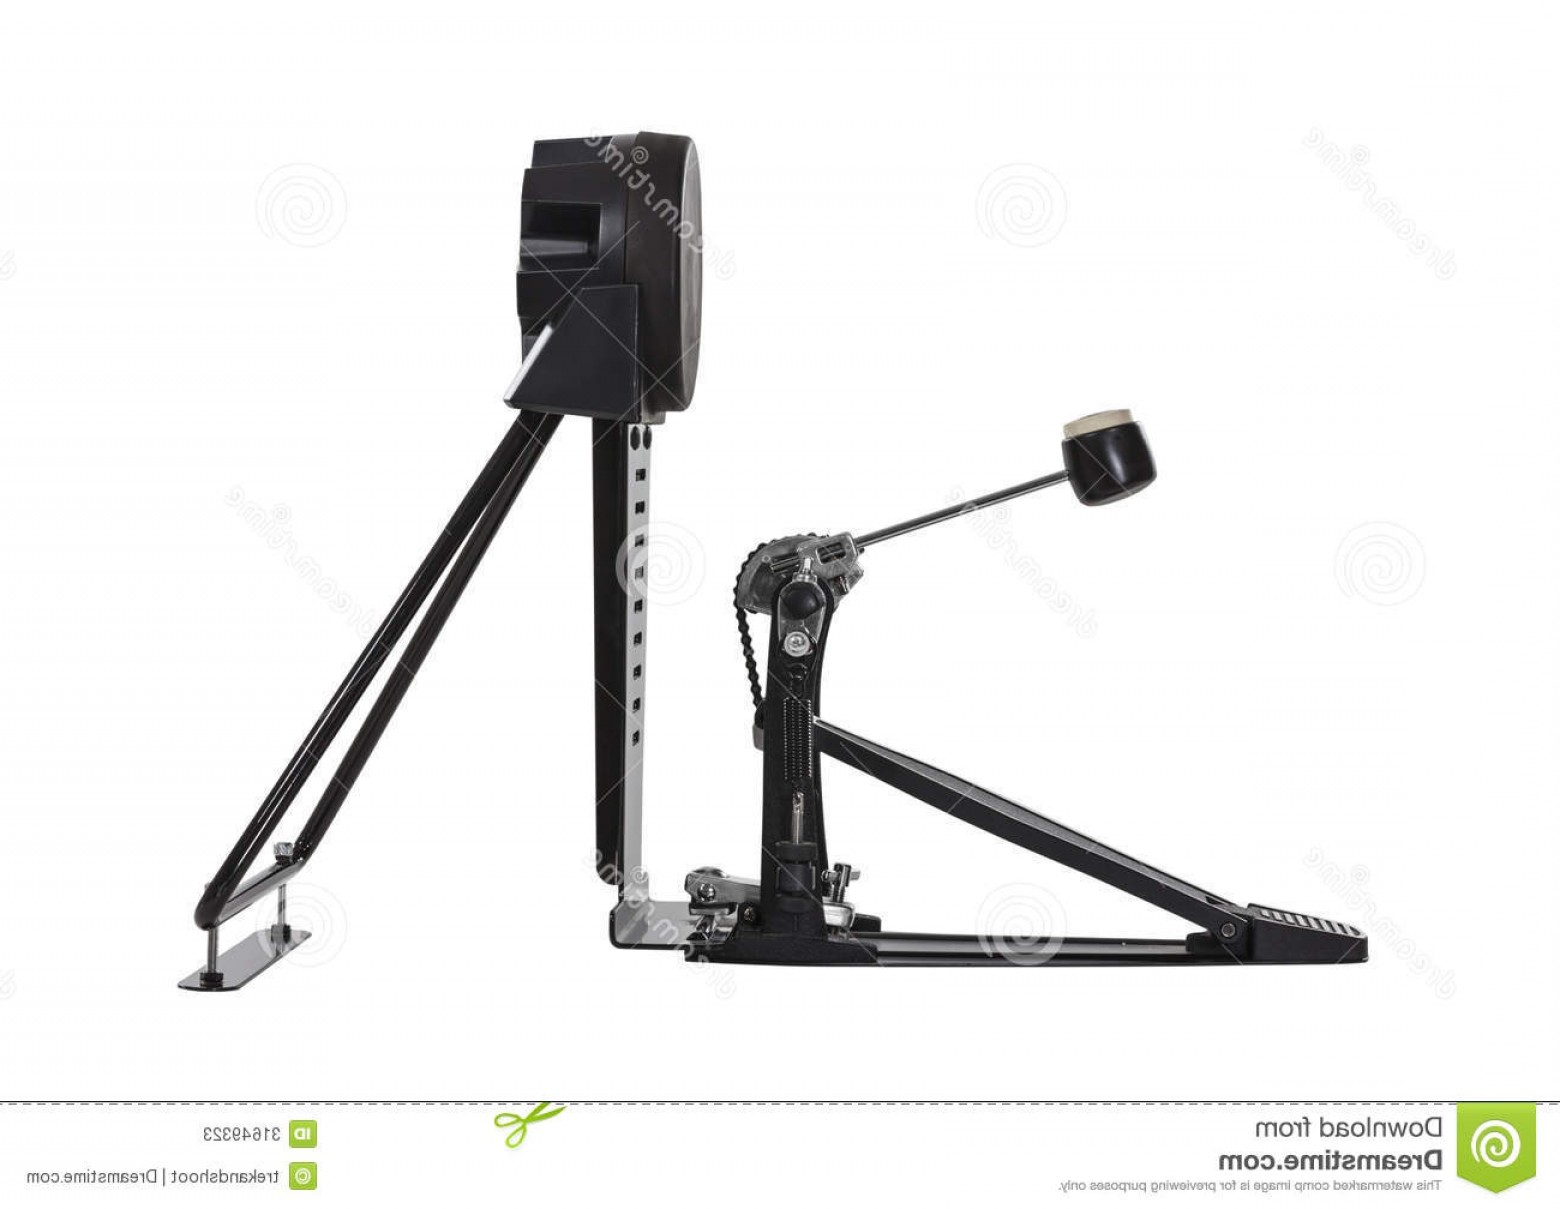 Vector Bass Drum Pedal: Stock Photos Electric Bass Drum Pedal Isolated Clipping Path Image